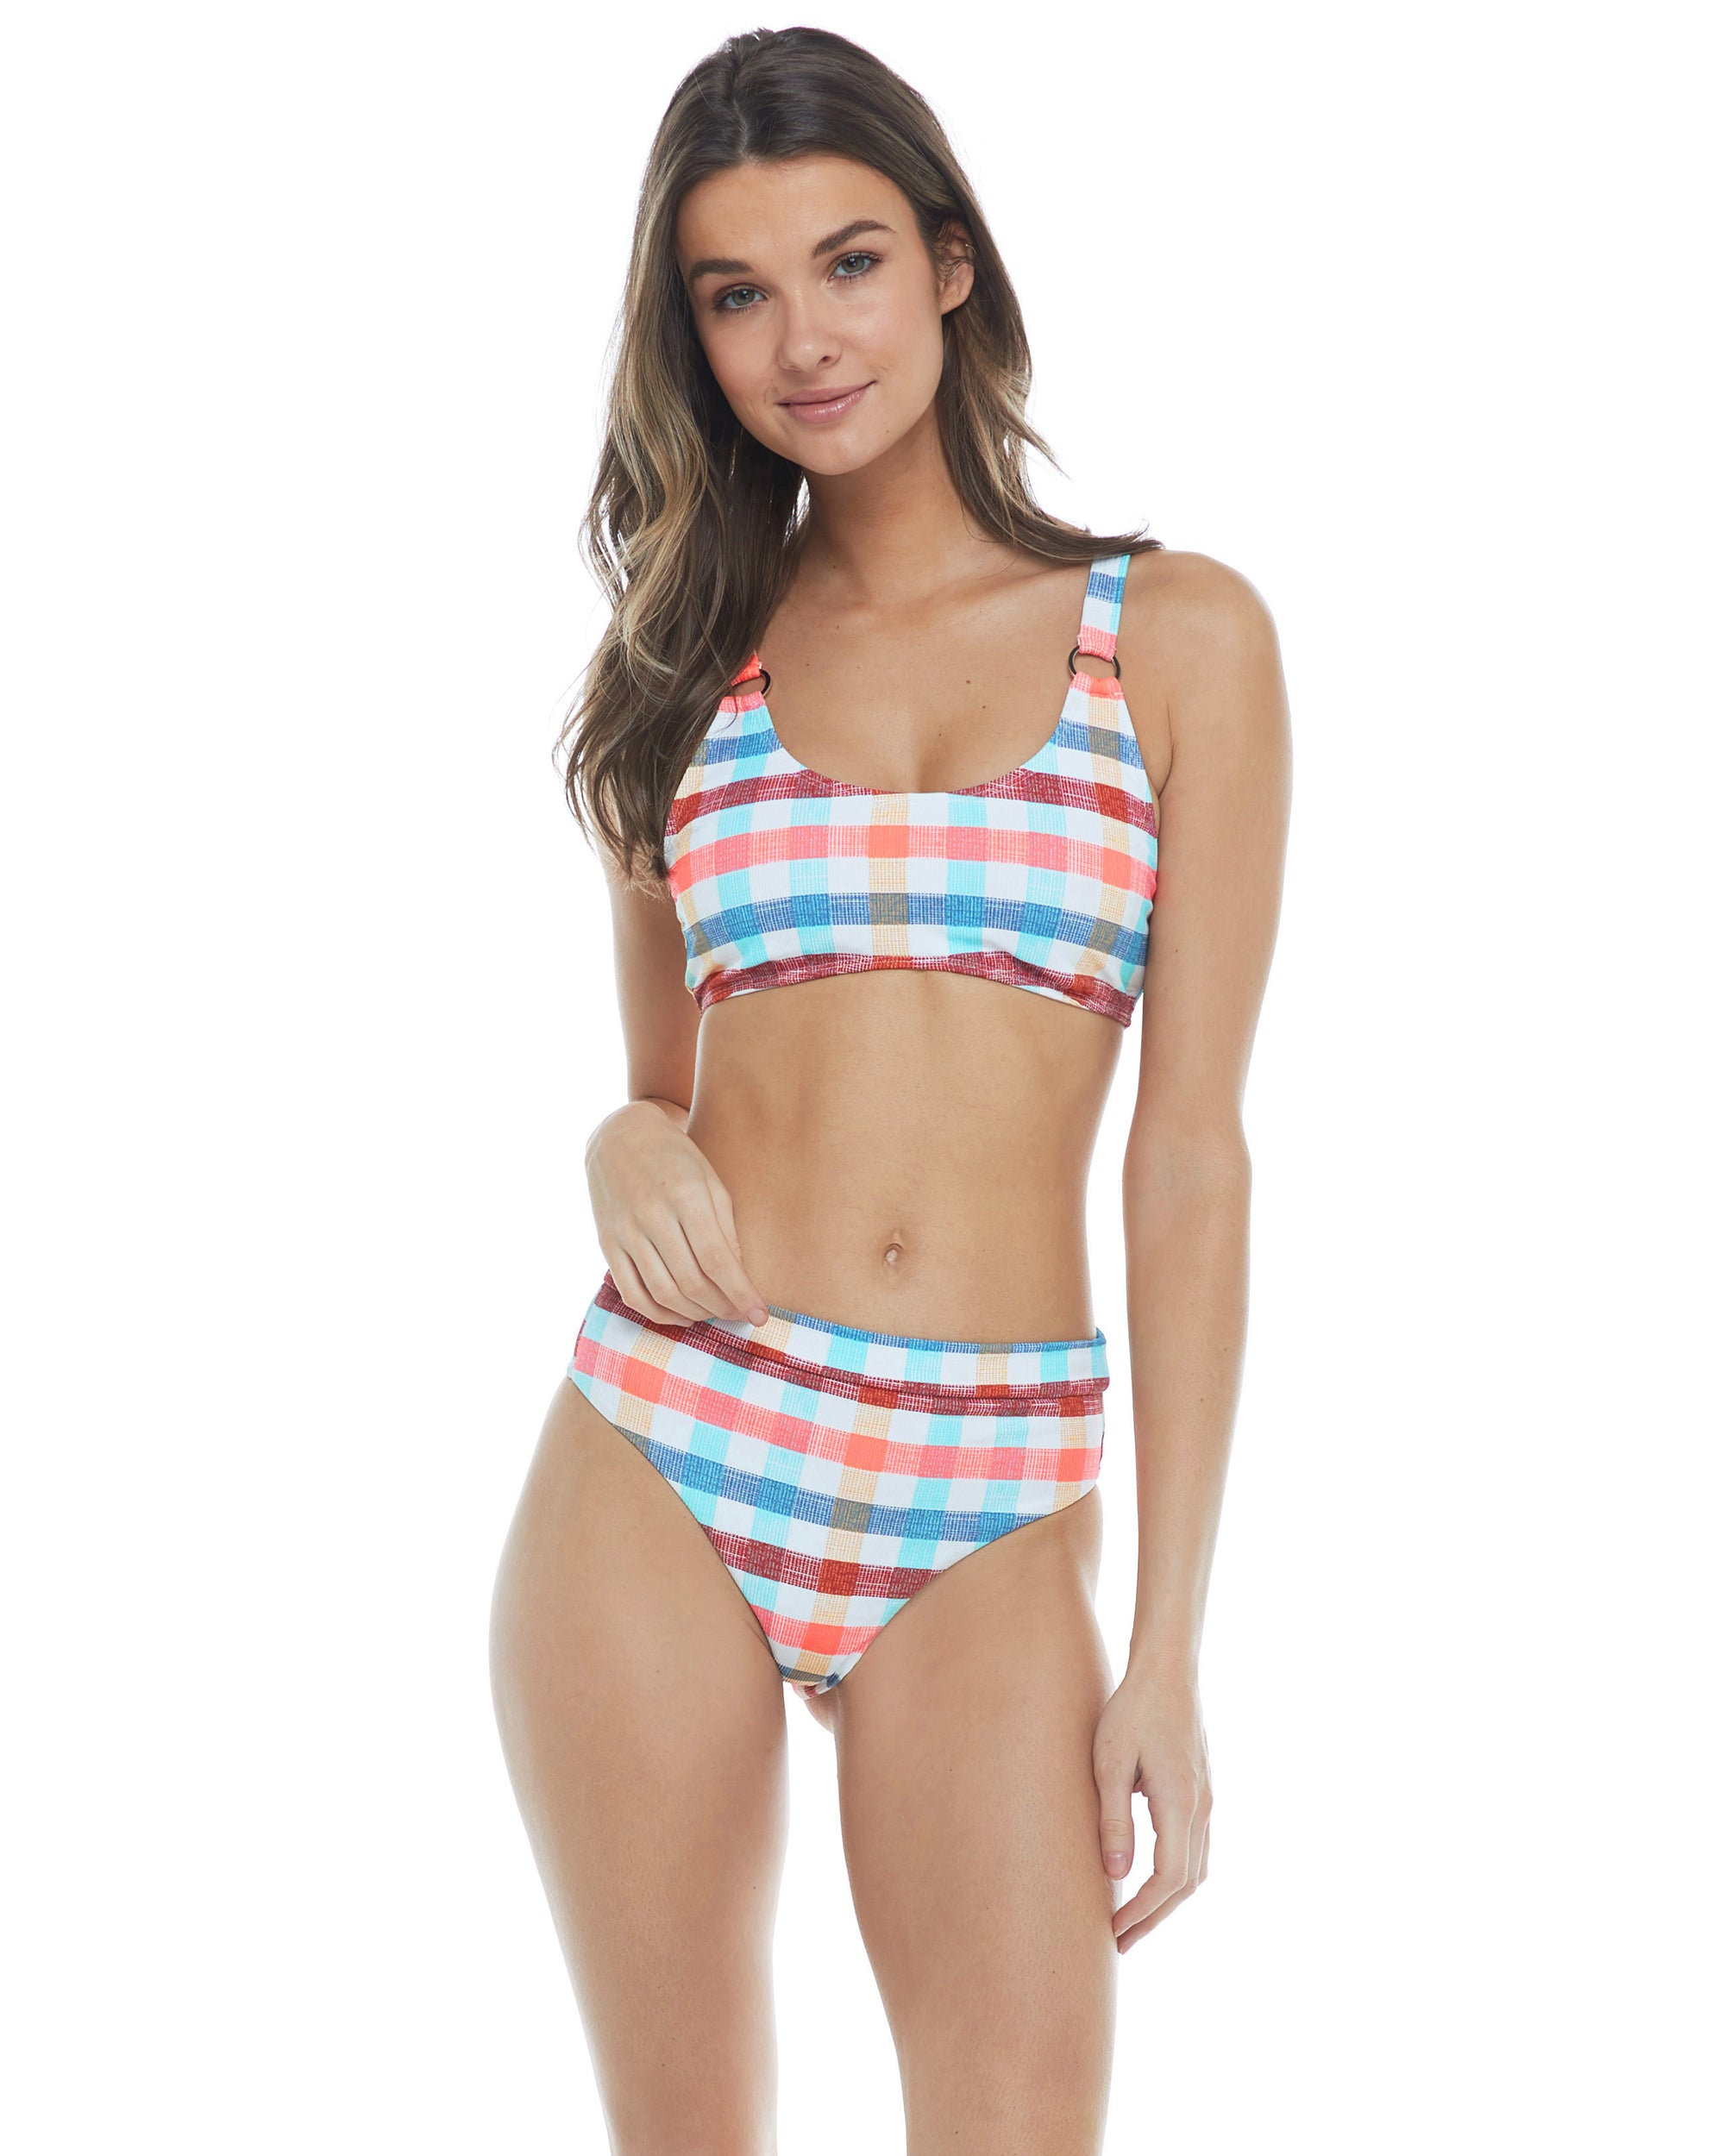 La La Land Milan Scoop Bikini Top - Combo Multi